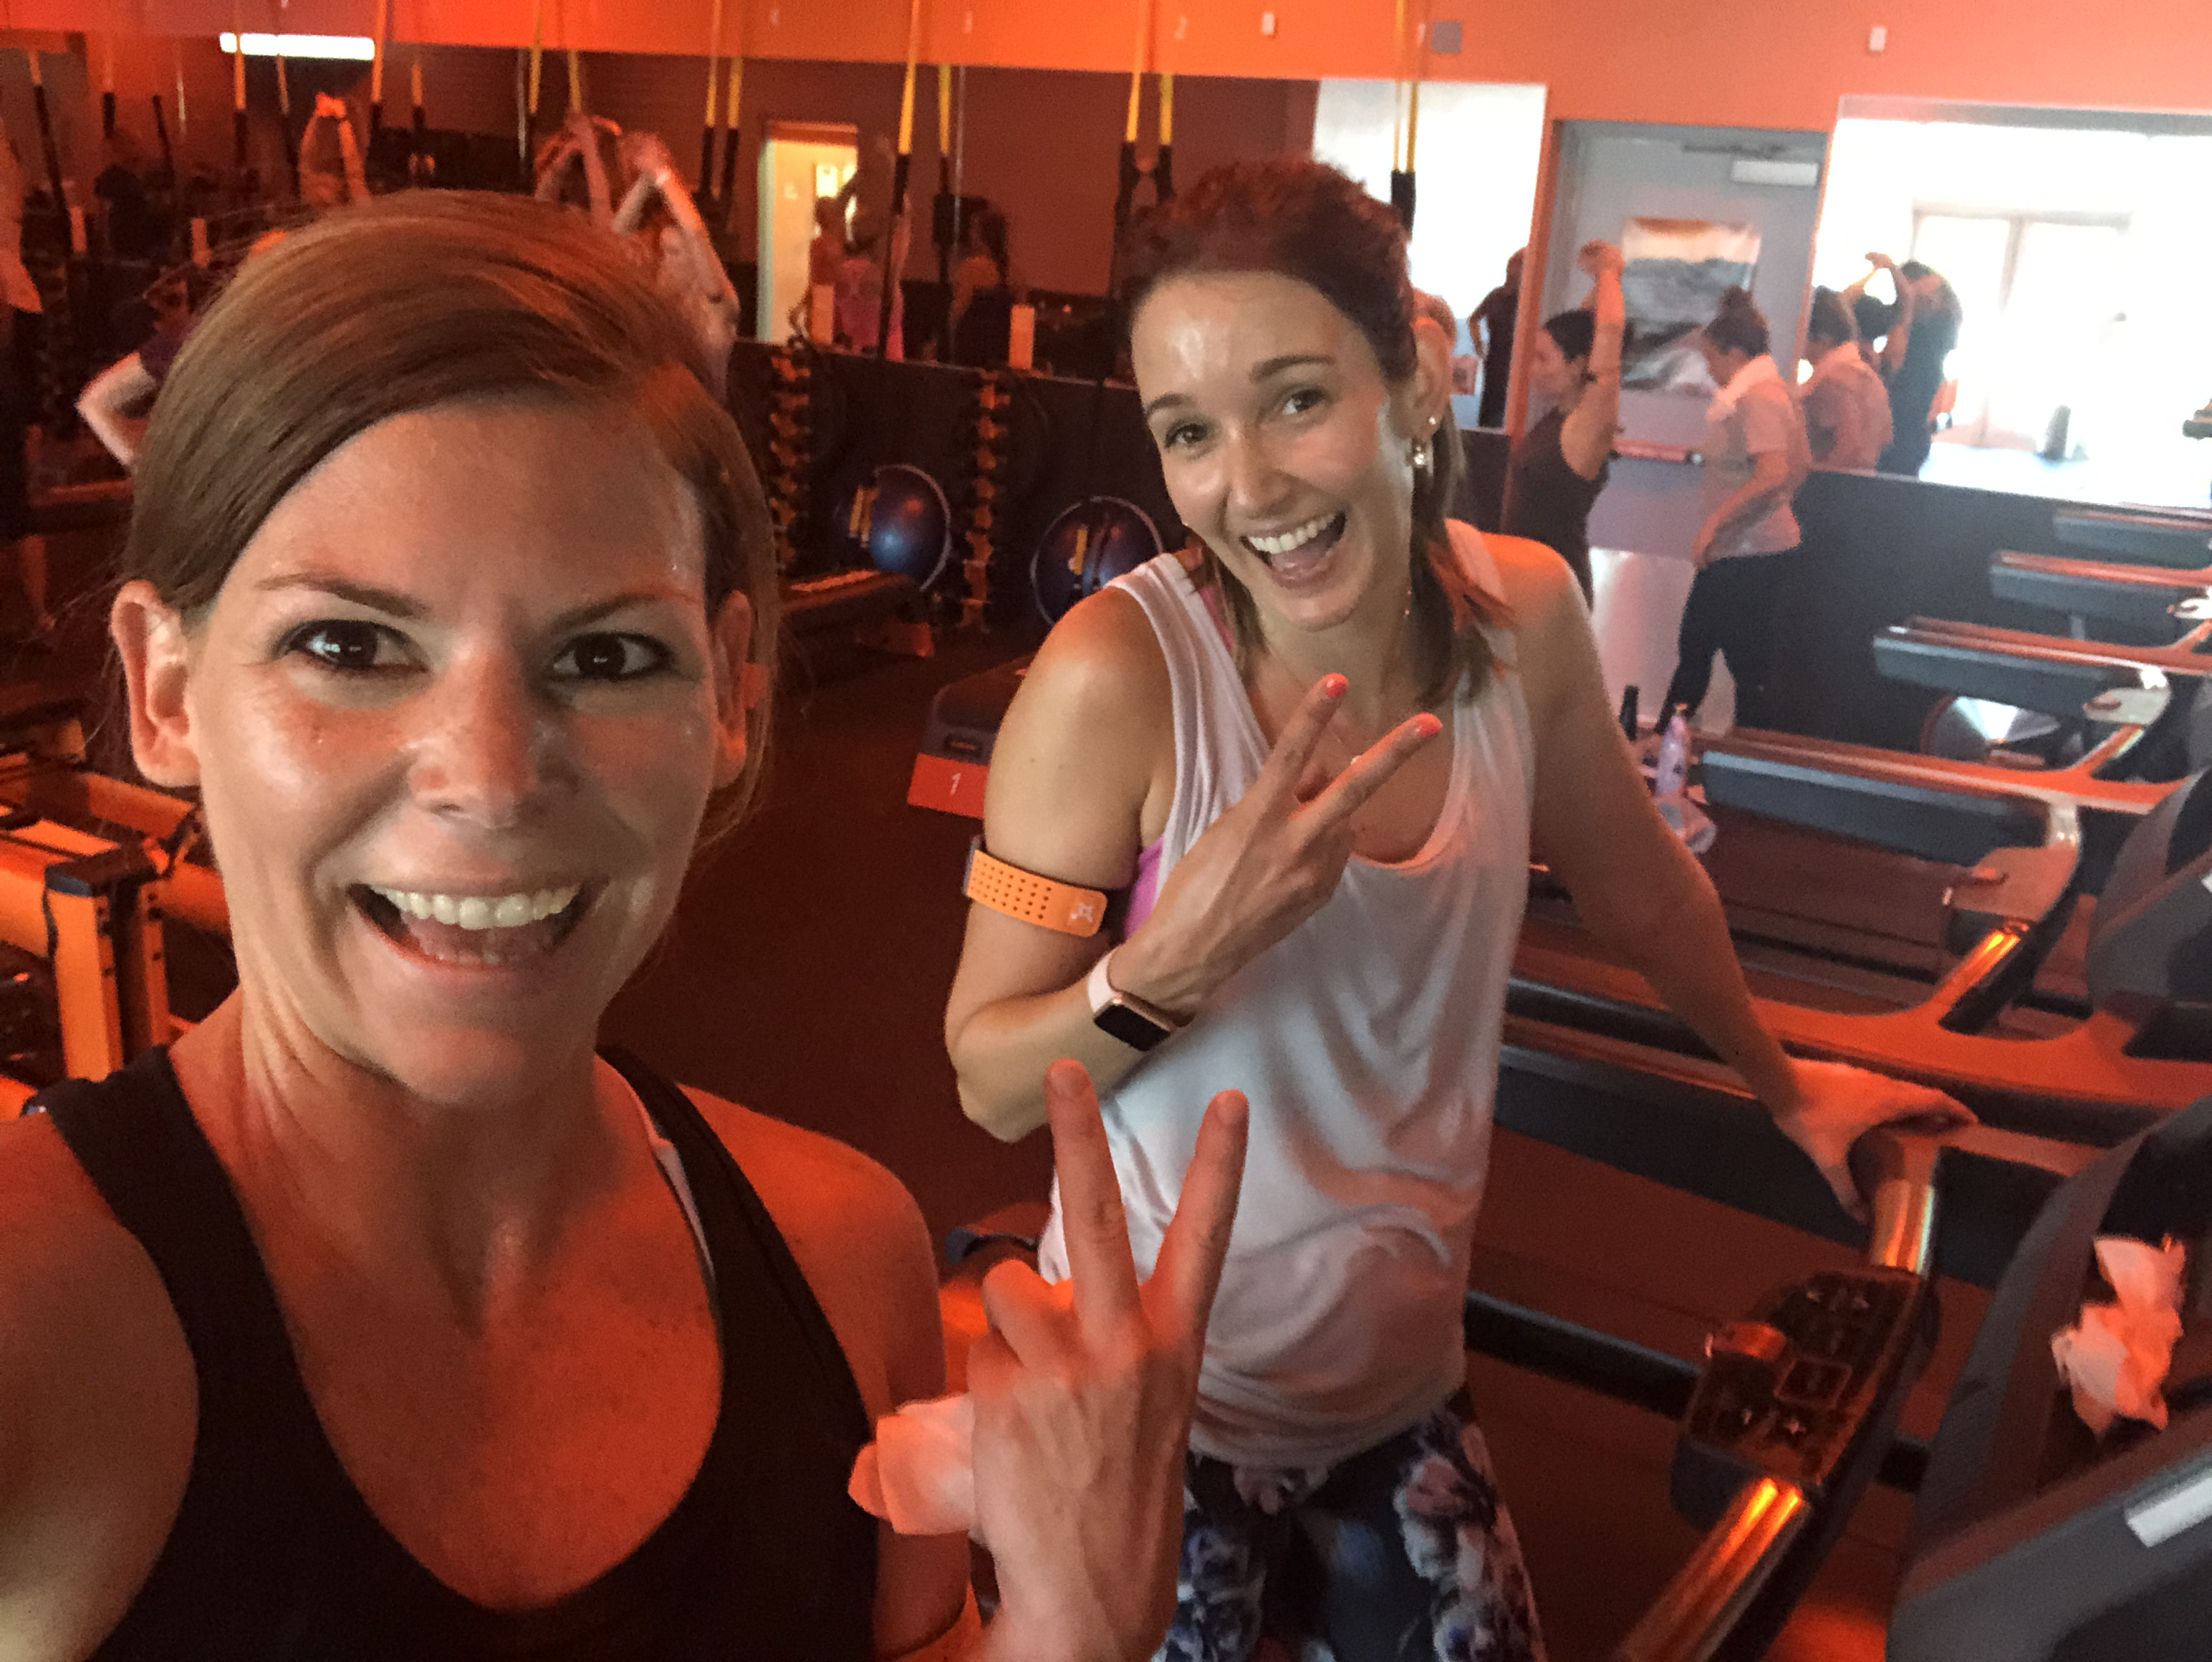 orangetheory fitness review – Erica and a friend at Orangetheory